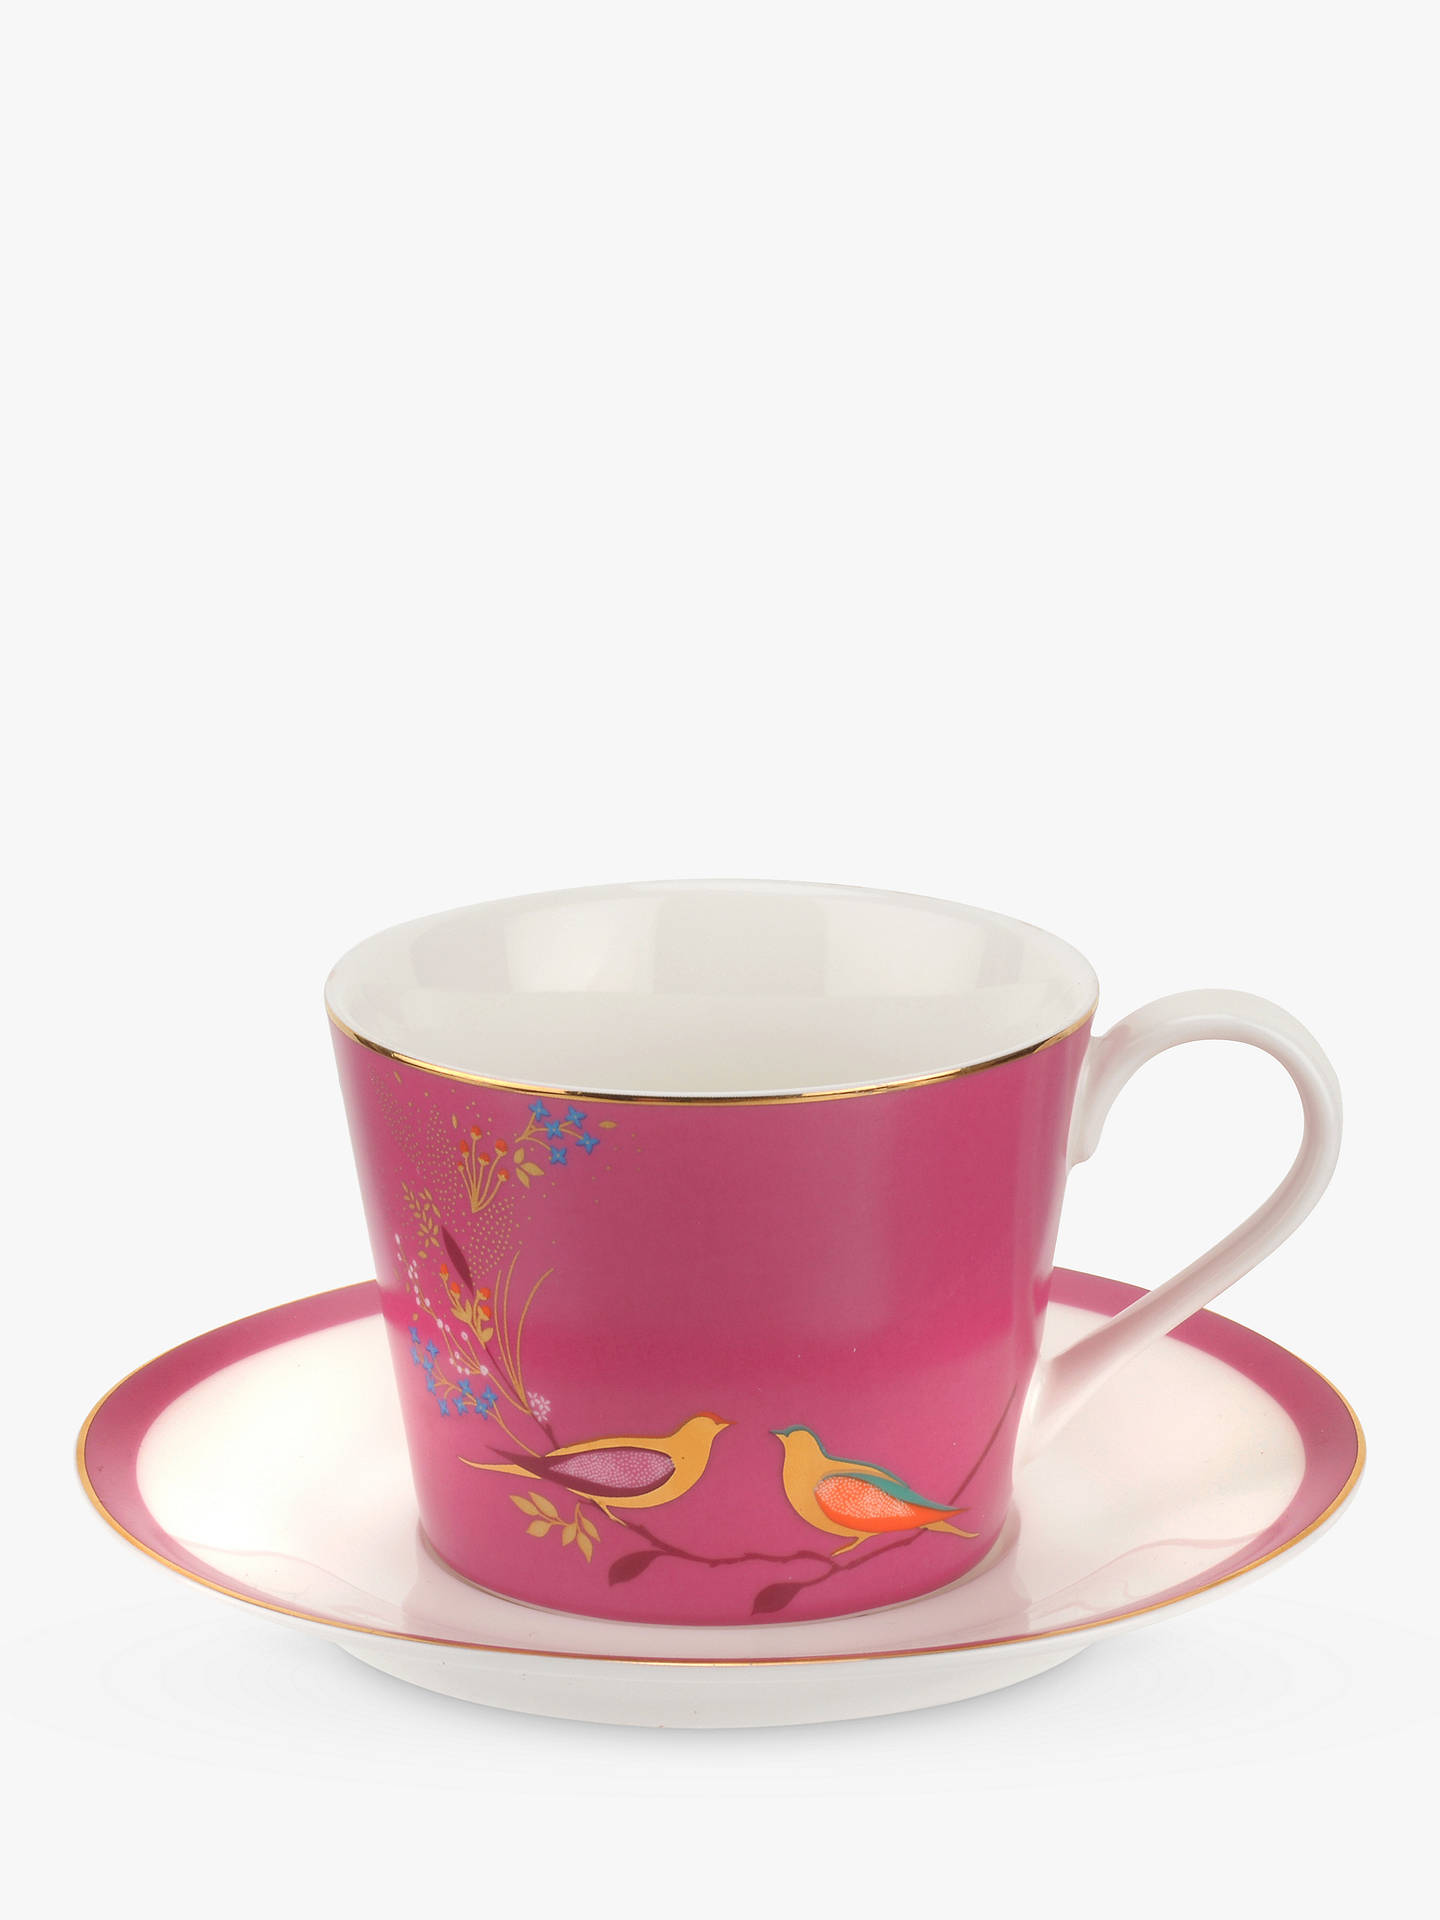 Buy Sara Miller Chelsea Collection Birds Cup and Saucer, 200ml, Pink Online at johnlewis.com